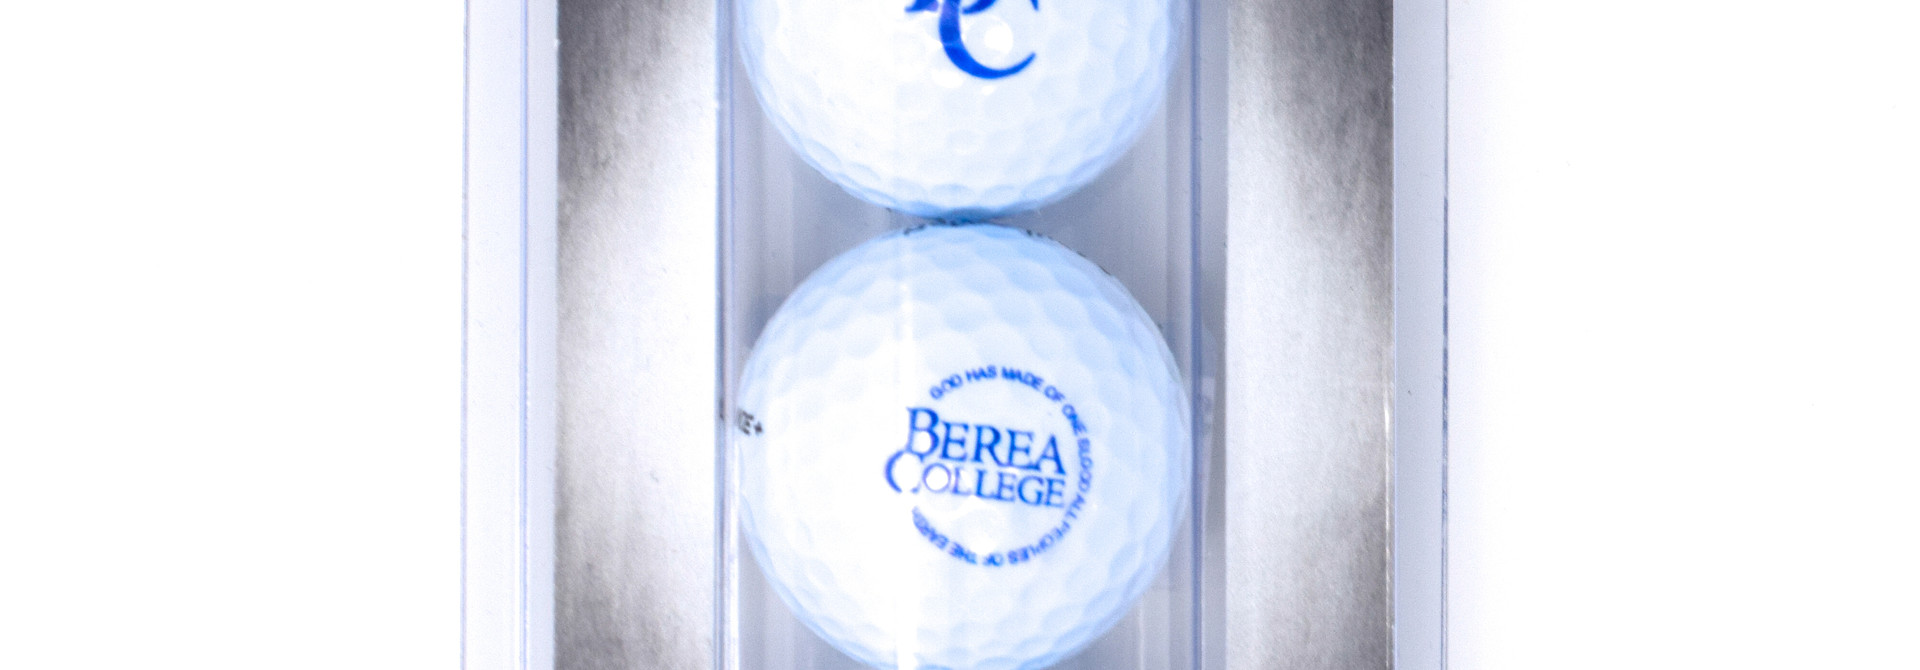 Berea College 3 pack Golf Balls